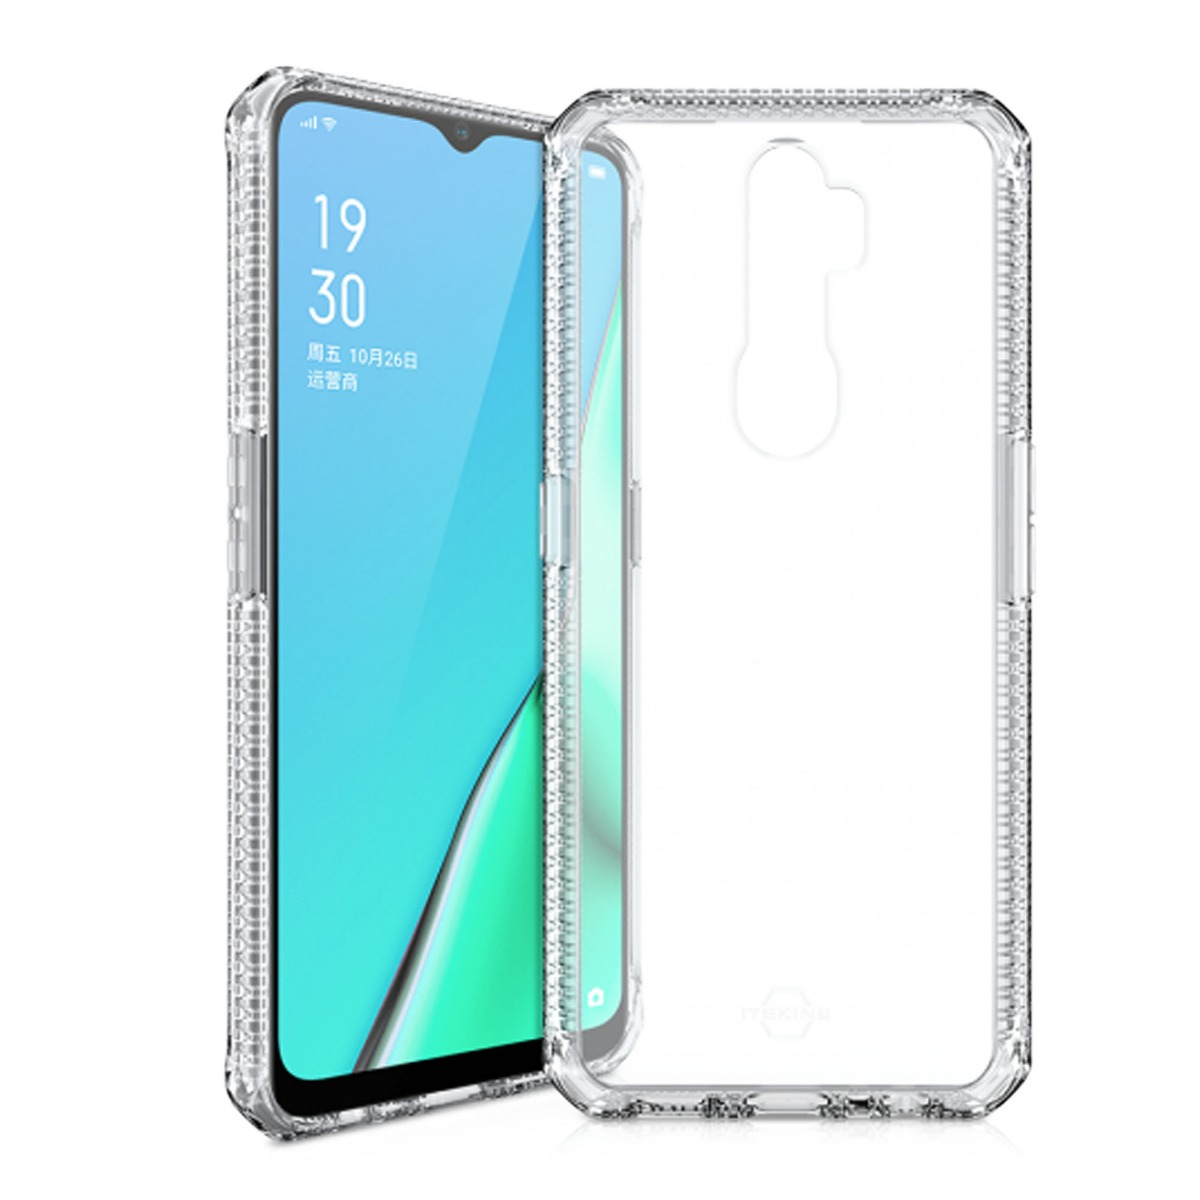 Itskins Hybrid Clear 2M/6.6 Ft Laboratory Drop Certified for OPPO Reno A9/A5(2020) Clear